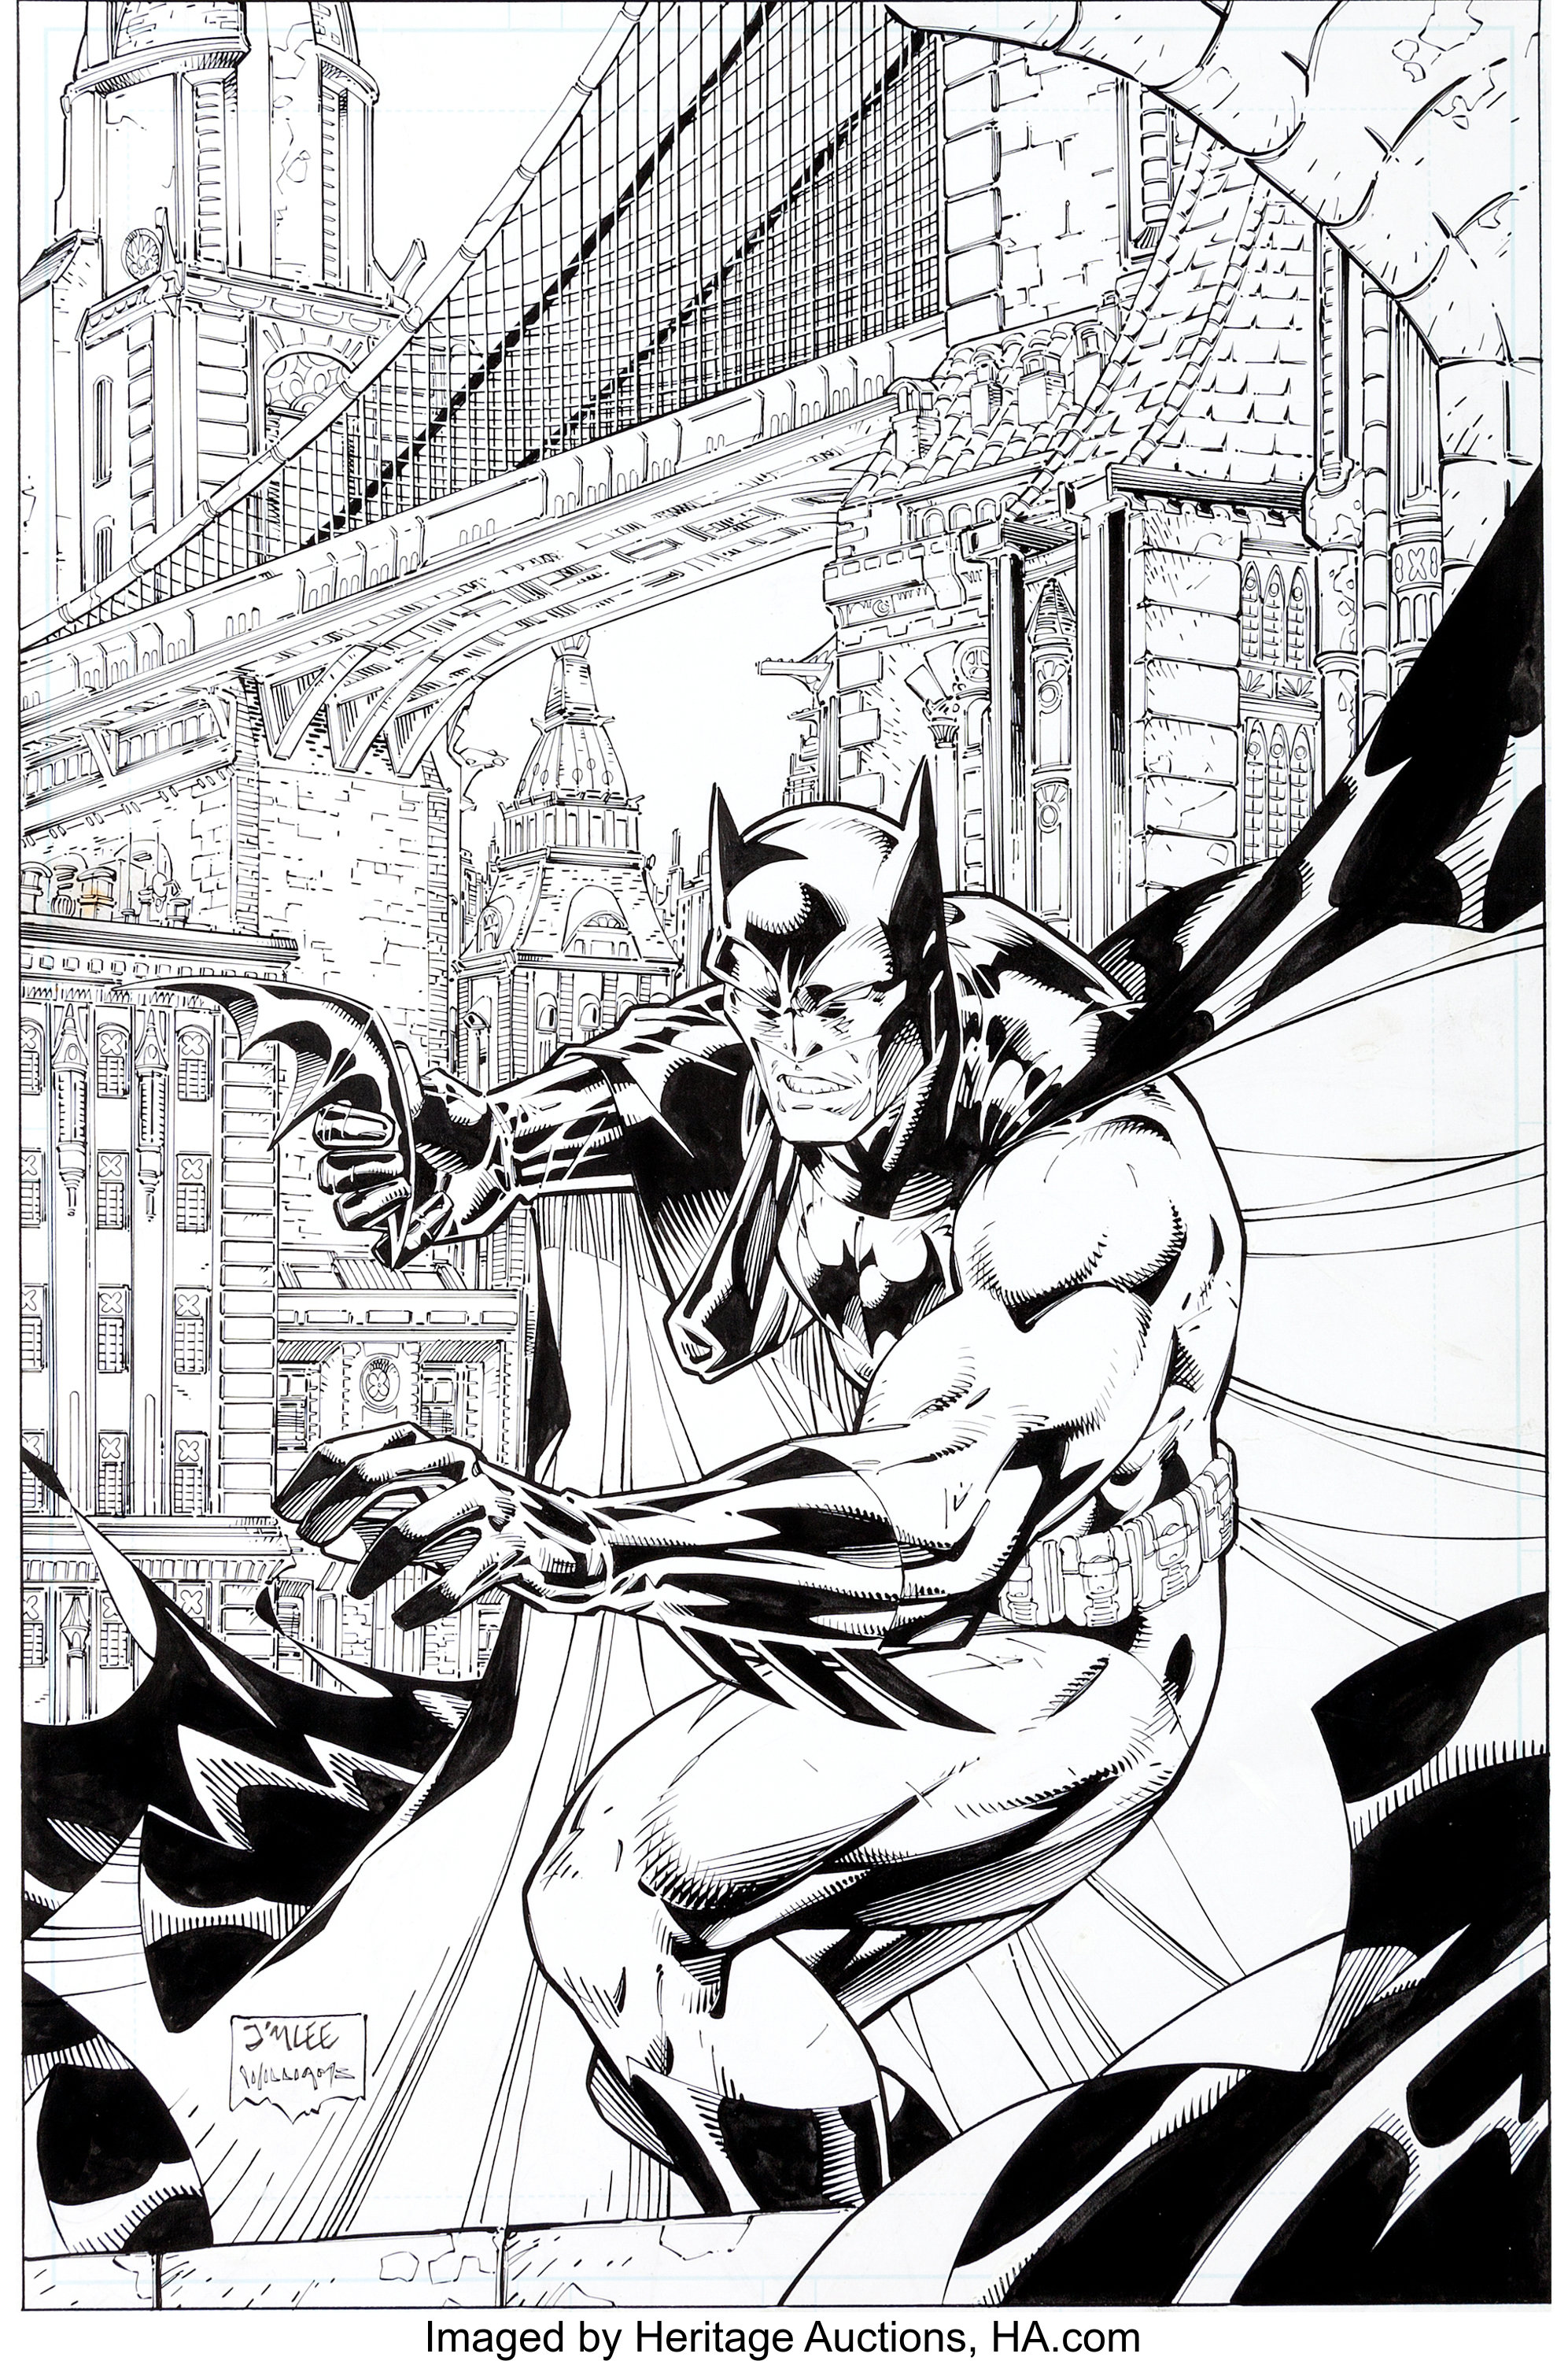 Jim lee and scott williams batman black and white 1 cover original lot 92203 heritage auctions